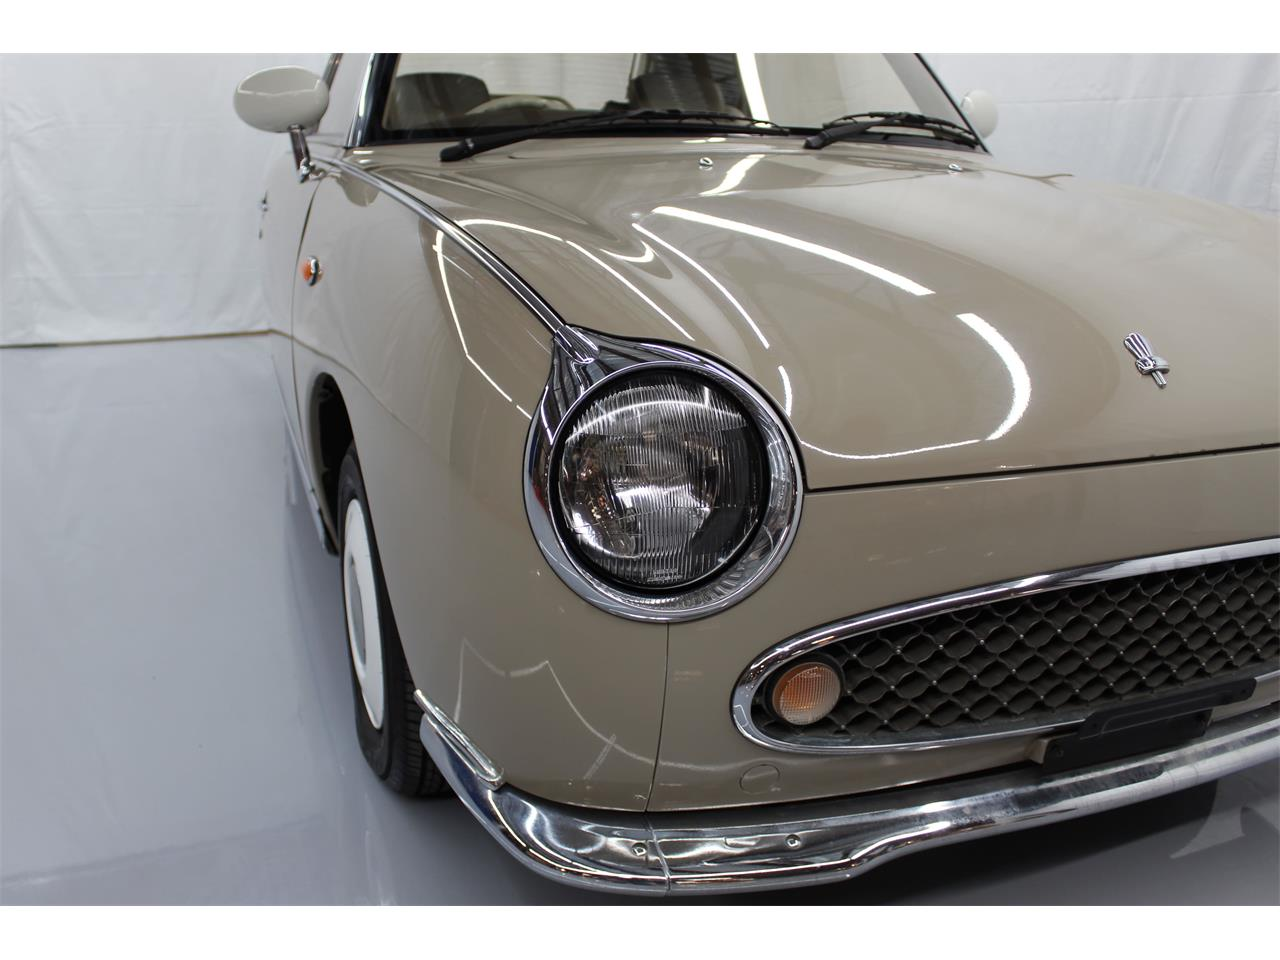 1991 Nissan Figaro for sale in Christiansburg, VA – photo 12